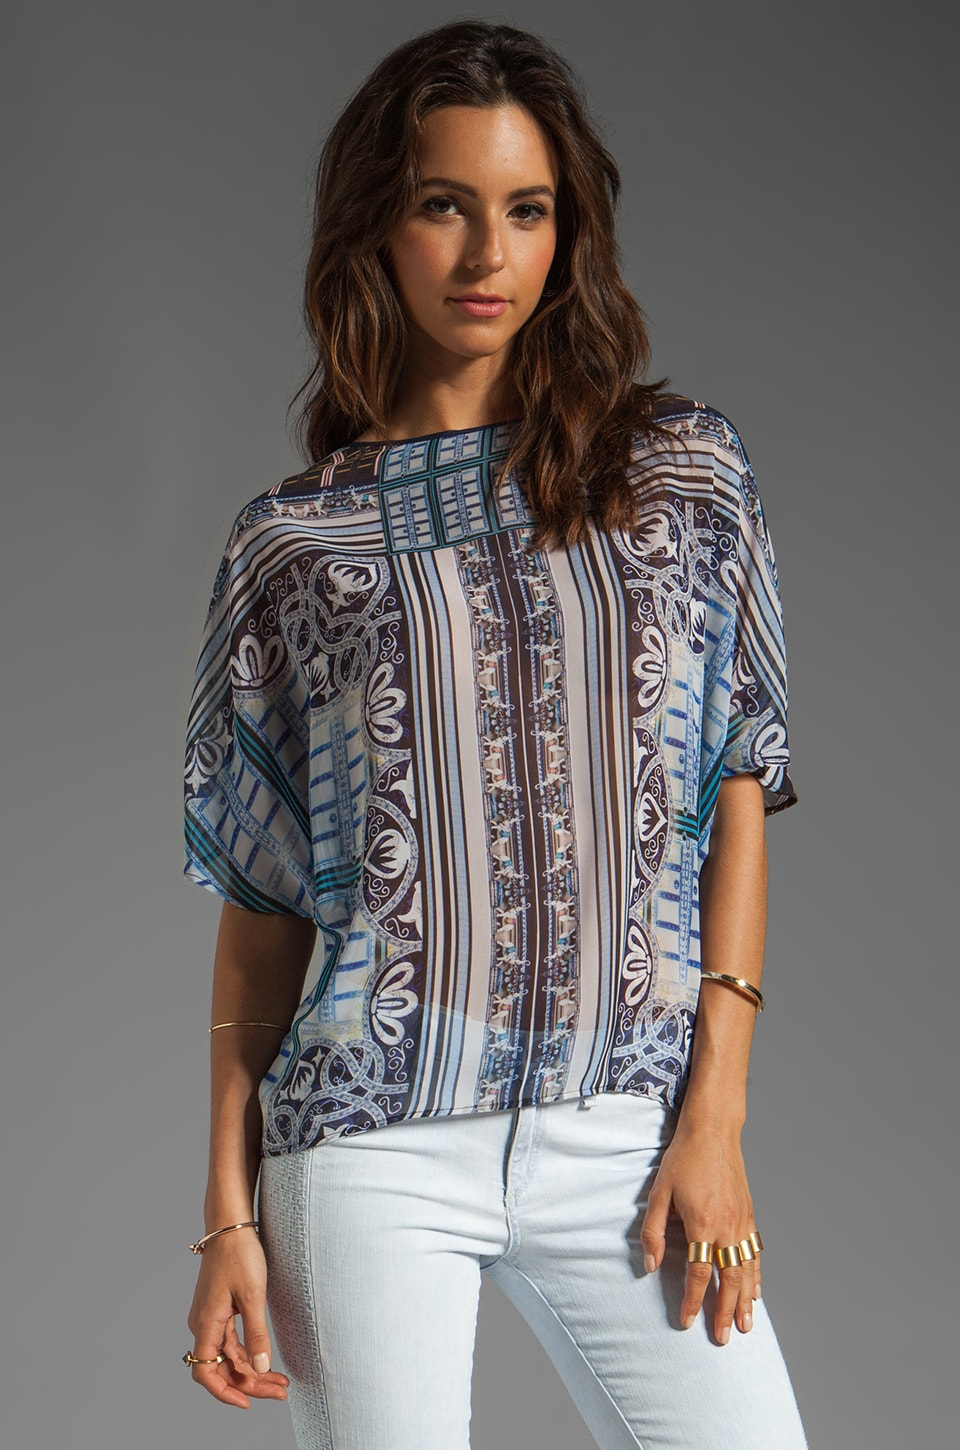 Clover Canyon Ornate Filagree Top in Multi